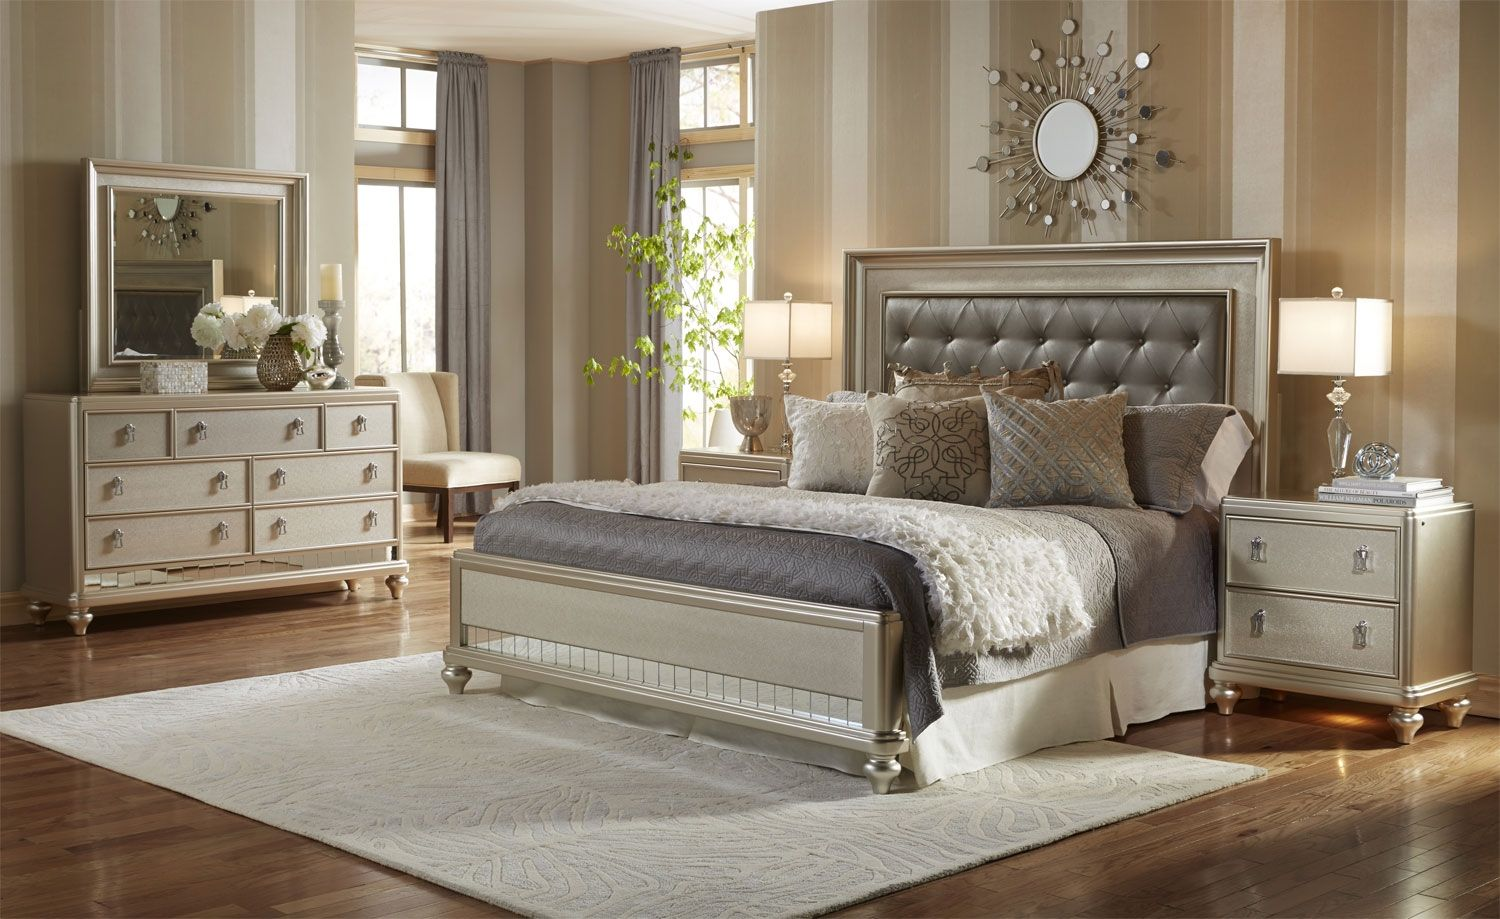 Create an alluring bedroom ambience with this